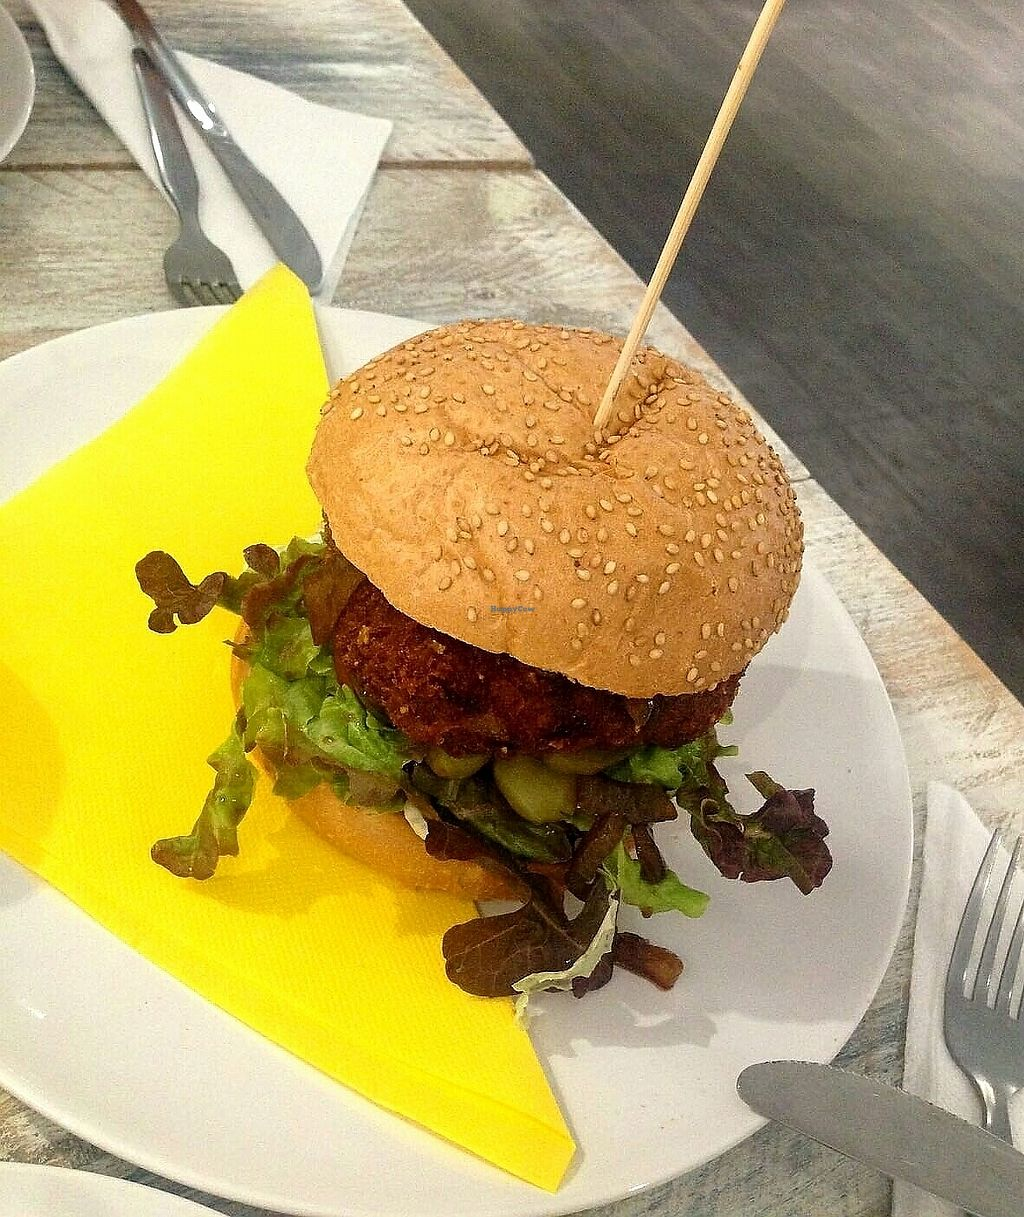 """Photo of Vegan Ibiza  by <a href=""""/members/profile/wyrd"""">wyrd</a> <br/>Chickpeas burger <br/> August 24, 2017  - <a href='/contact/abuse/image/93478/296833'>Report</a>"""